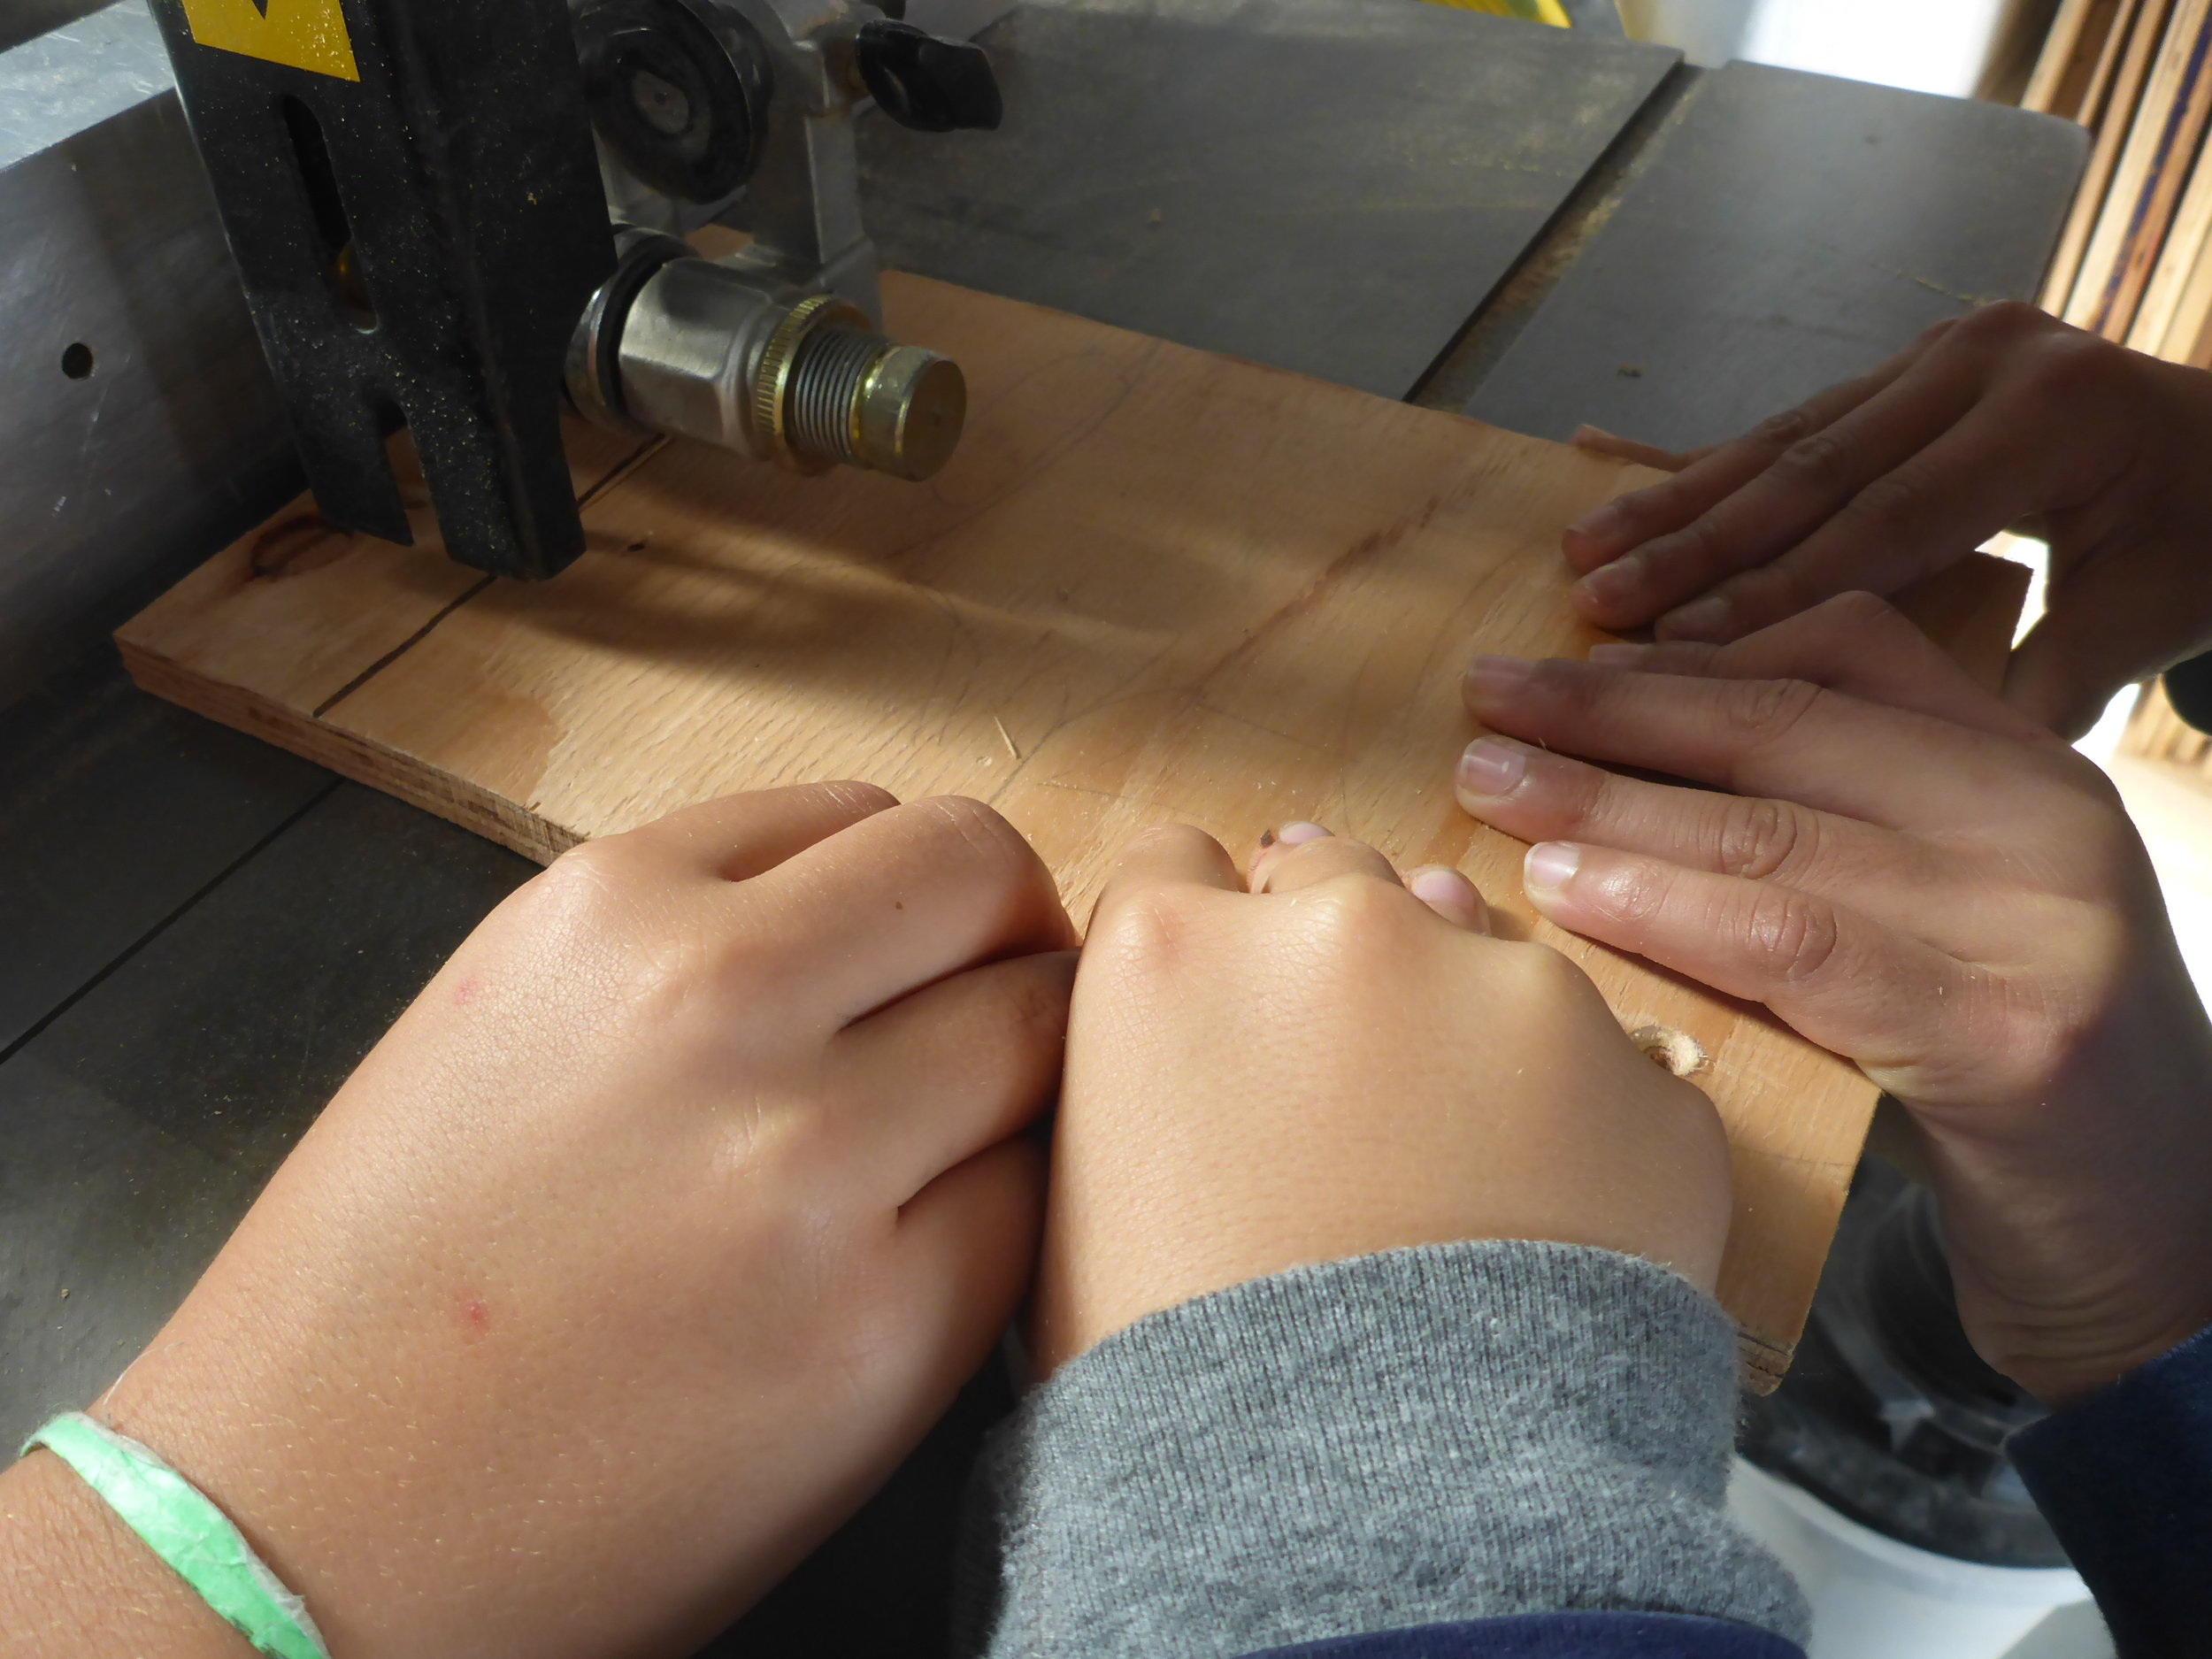 Nolan, Raj and Jaro learn how to use the bandsaw and work together to cut out the pieces for their sleeve.